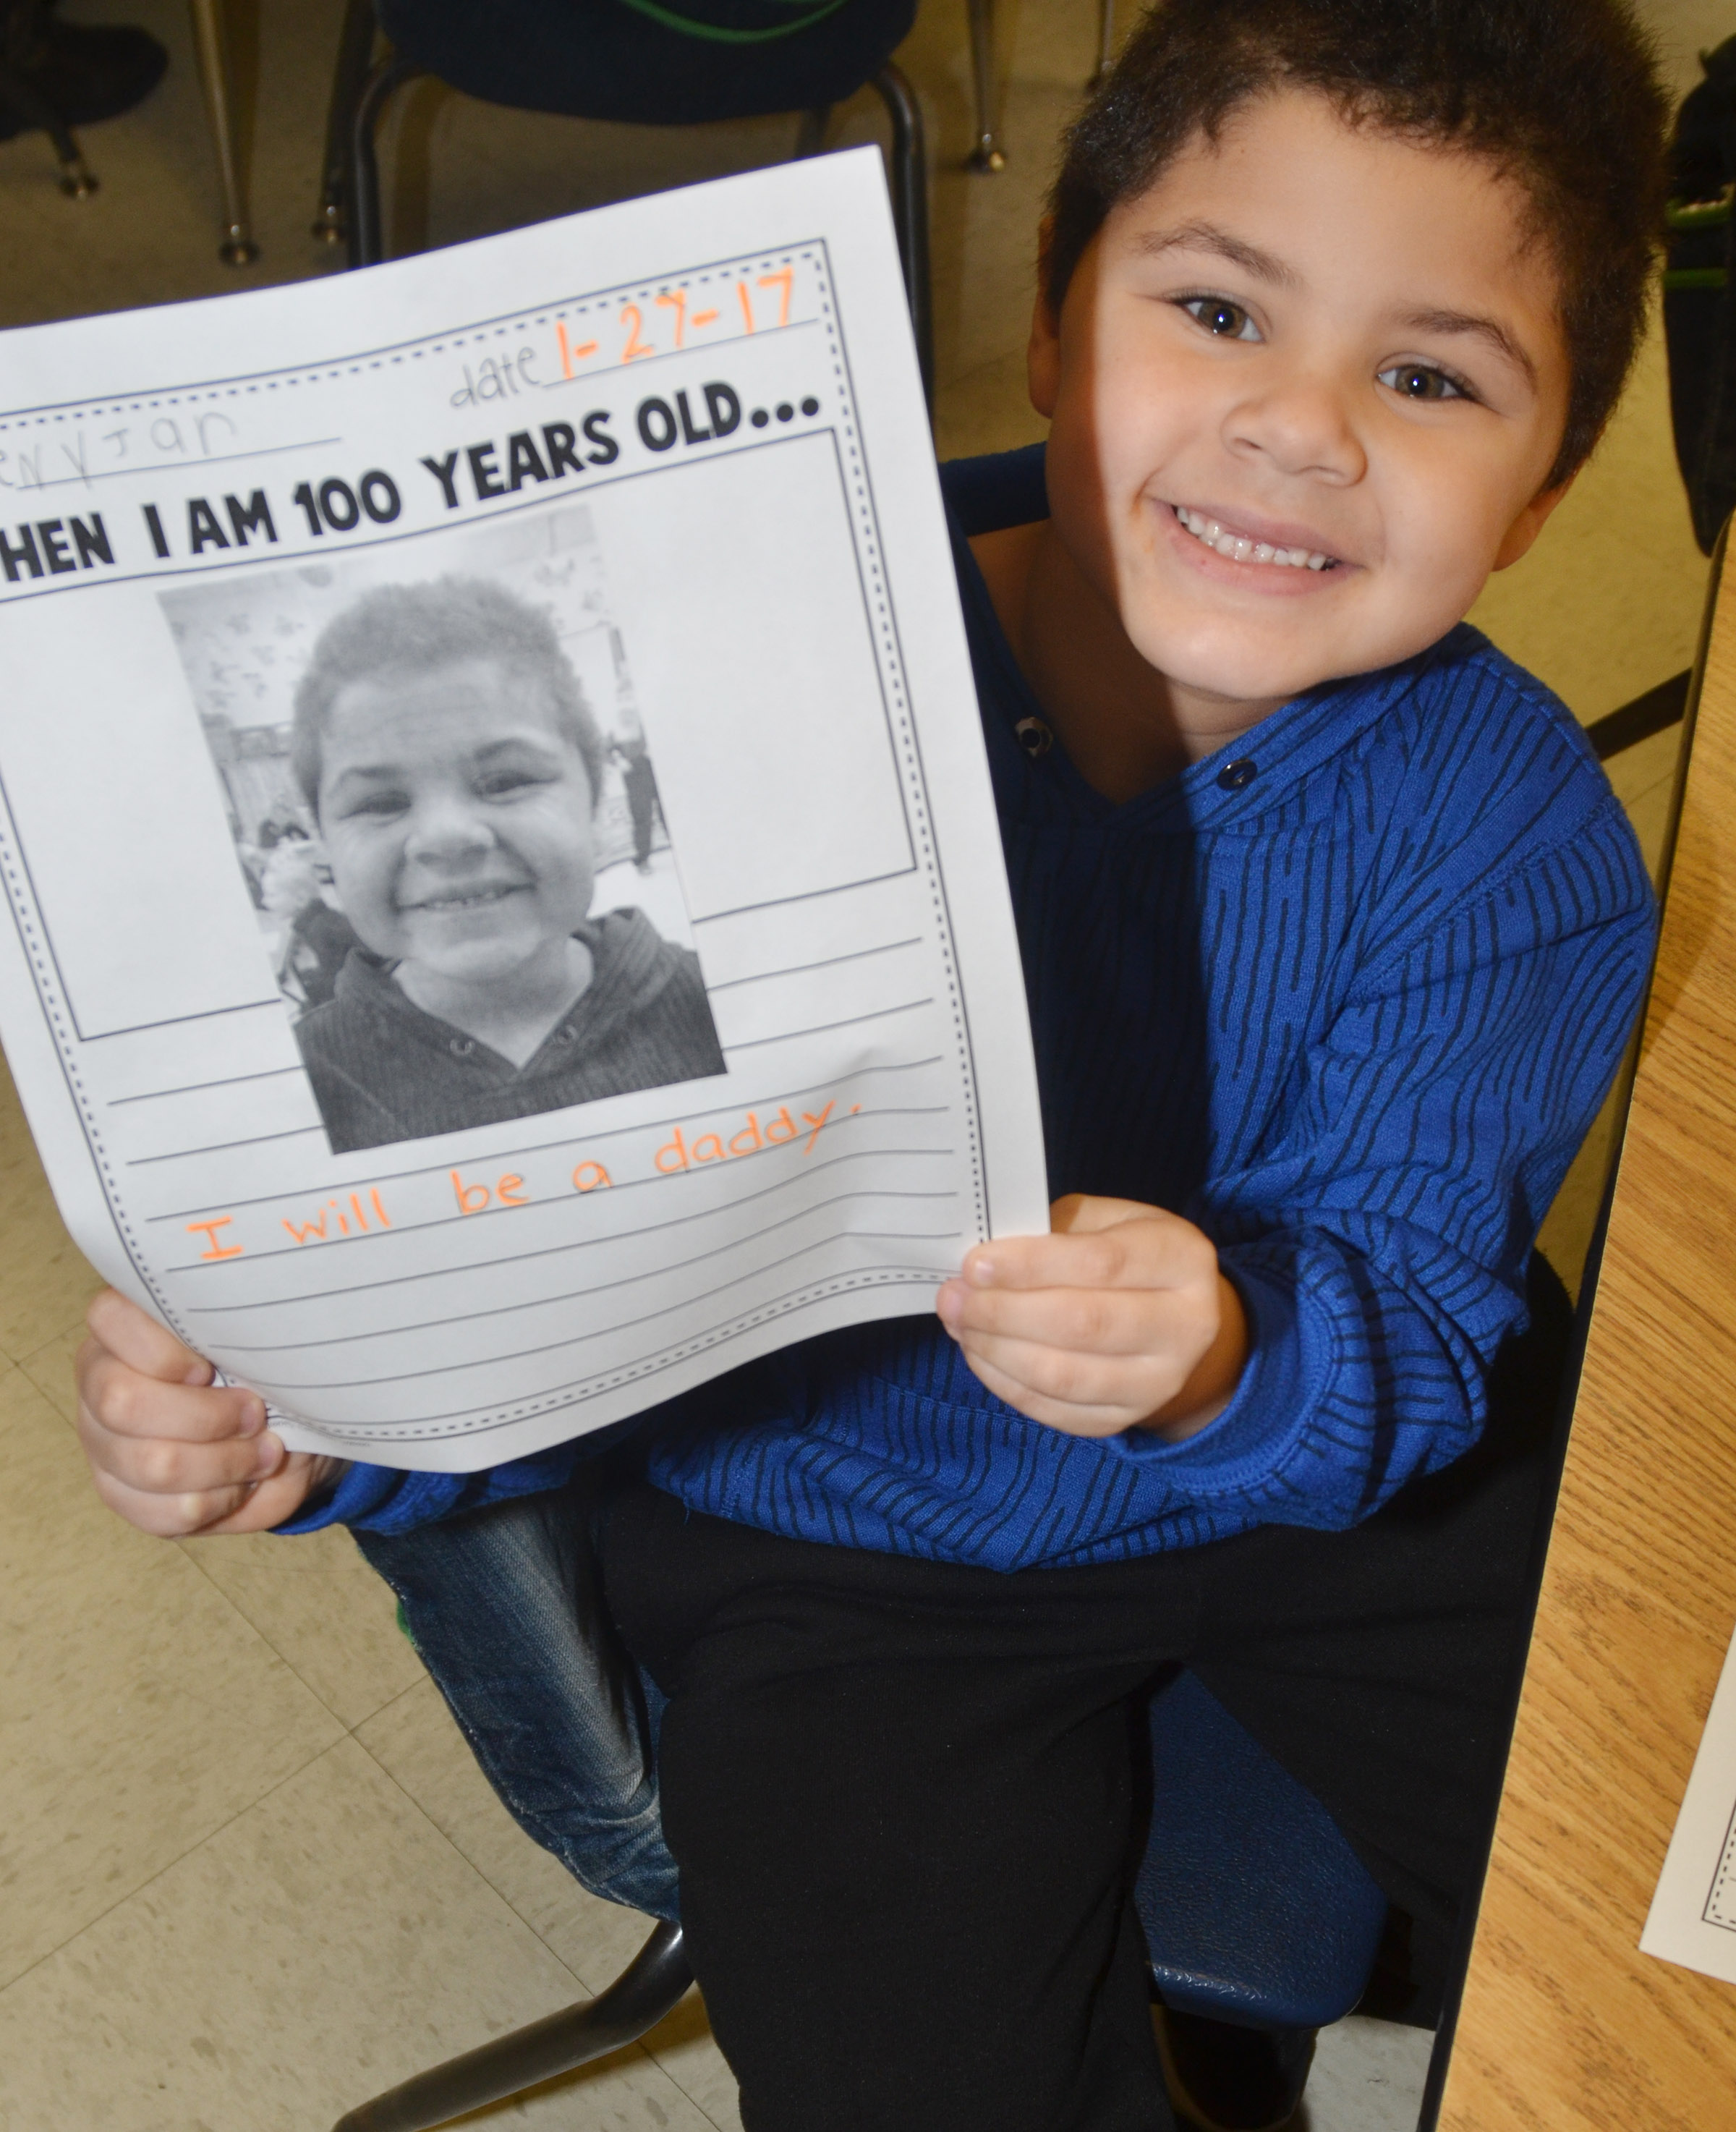 CES kindergartener NyJah Vaught holds a photo of what he will look like when he is 100 years old.